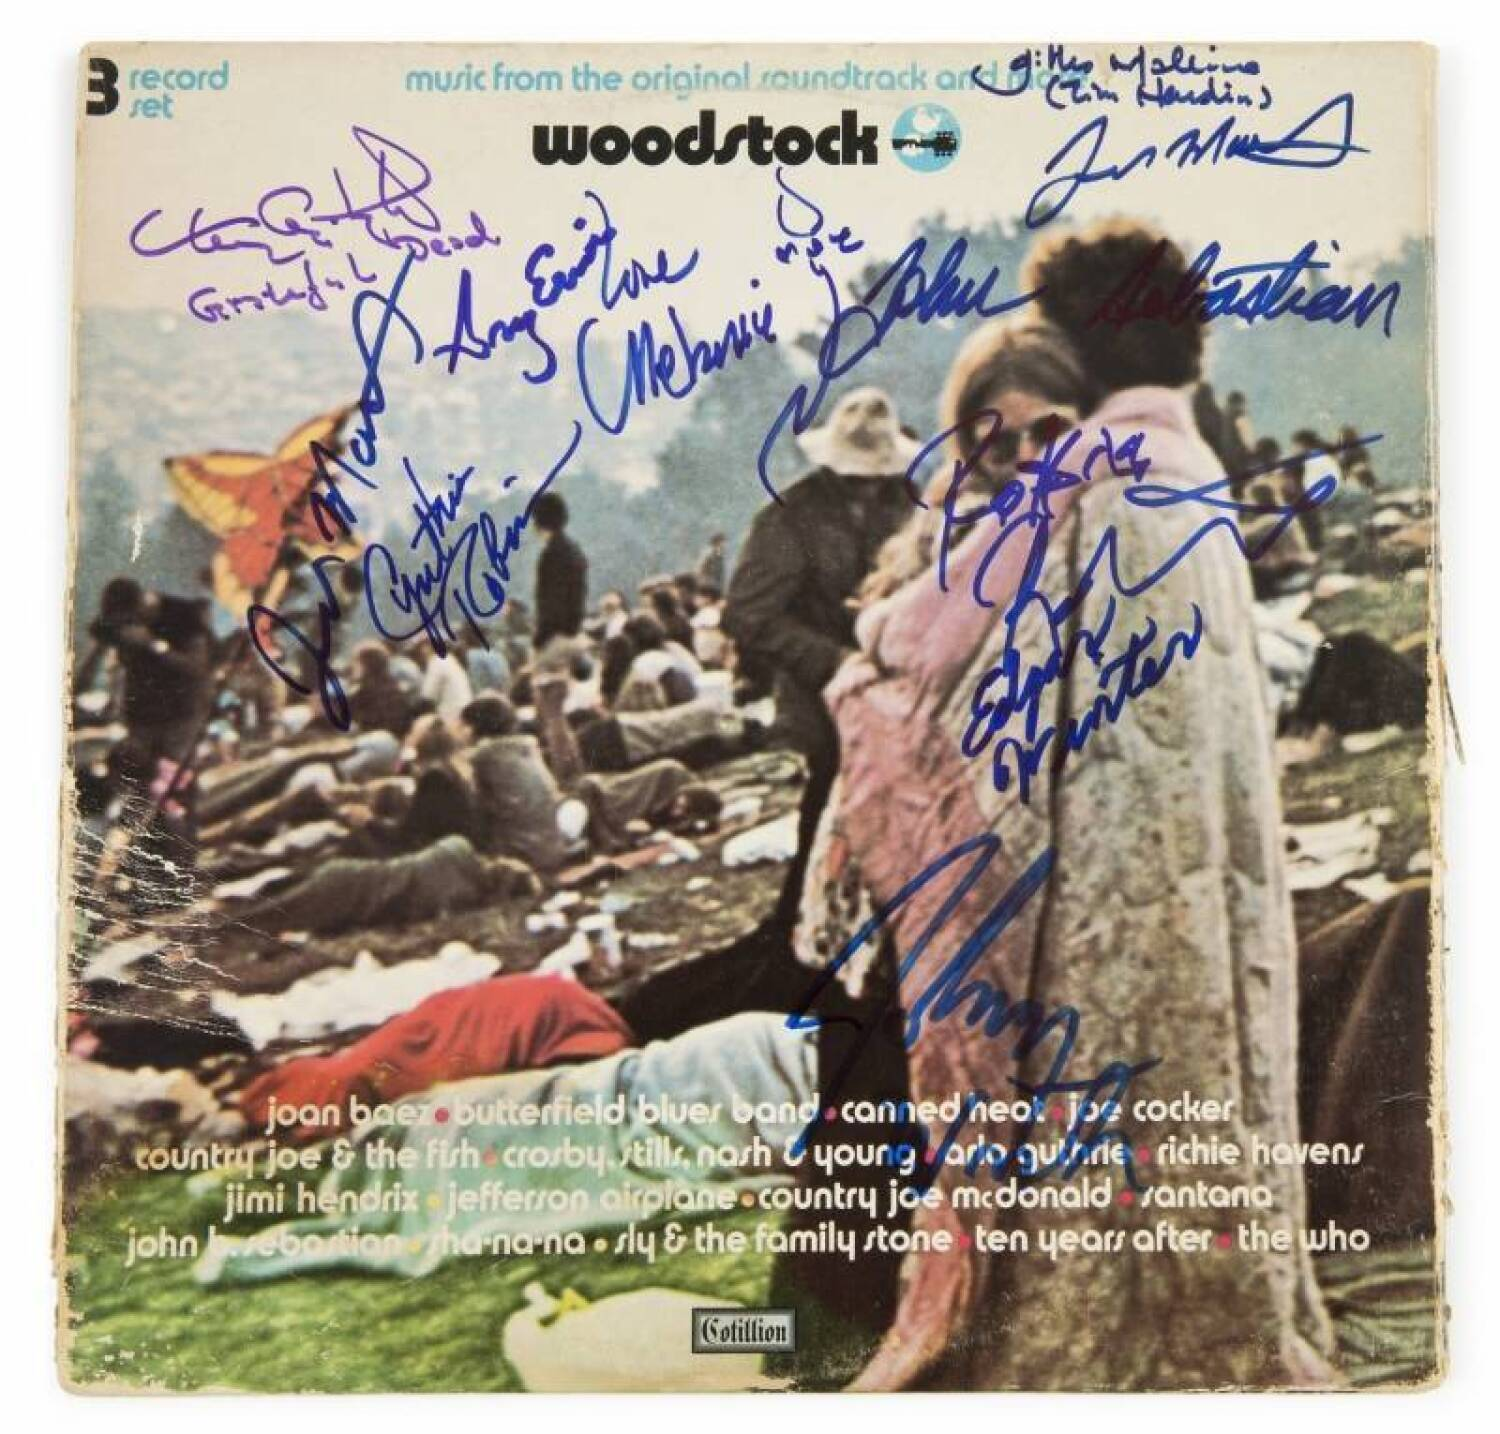 WOODSTOCK PERFORMERS SIGNED ALBUM COVER - Current price: $200